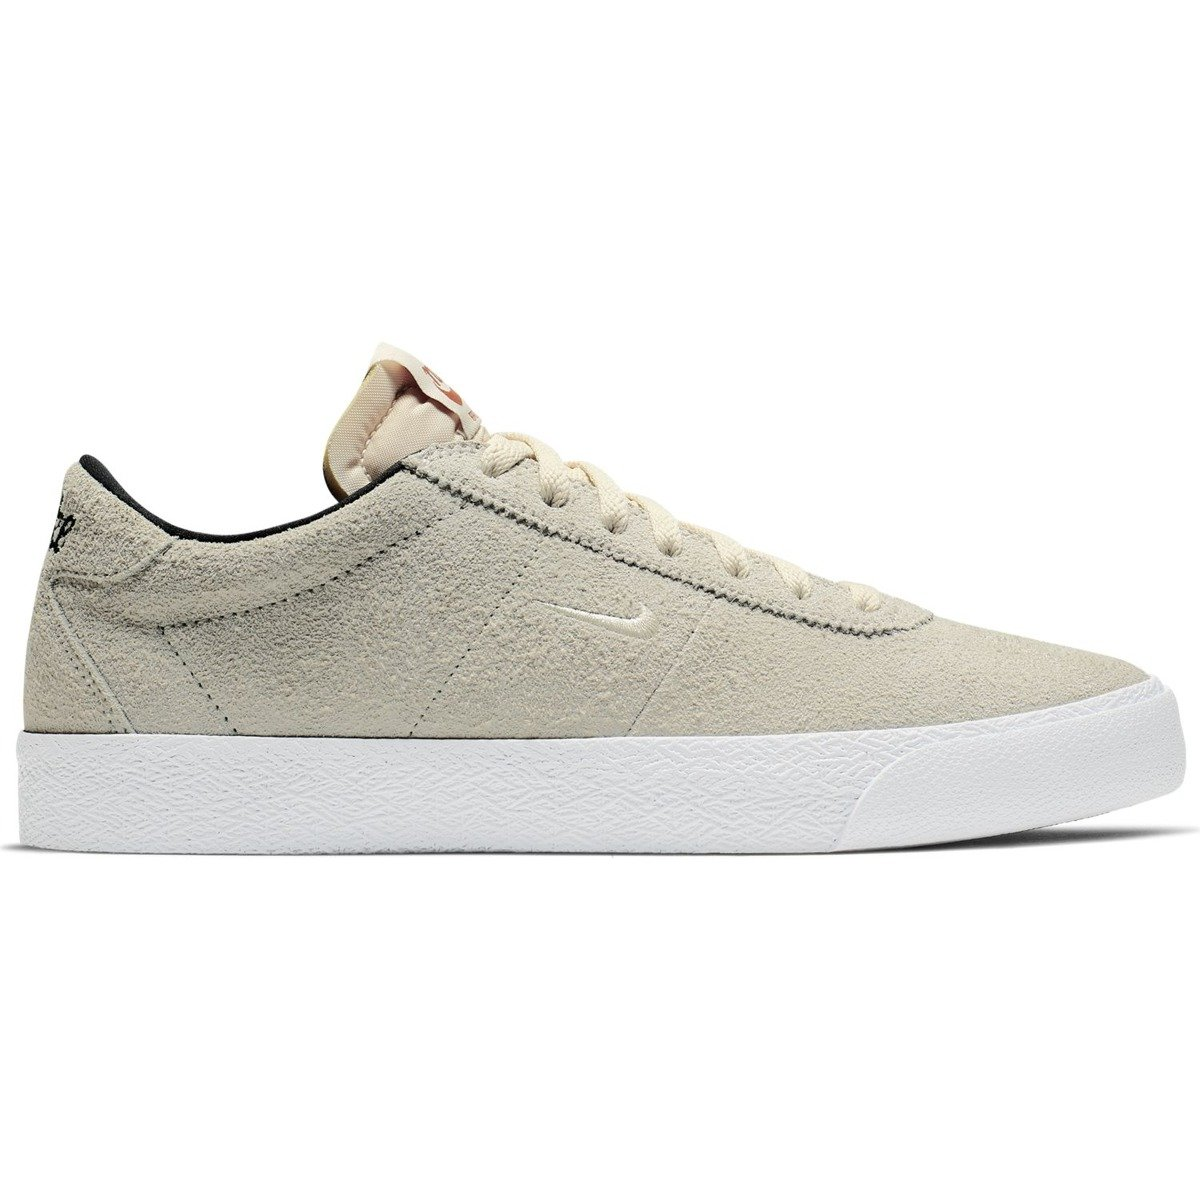 buy popular 2a306 bbb4b Miniramp Skateshop buty Nike Sb Zoom Bruin Ultra Light Creamlight Cream- black-gum Yellow